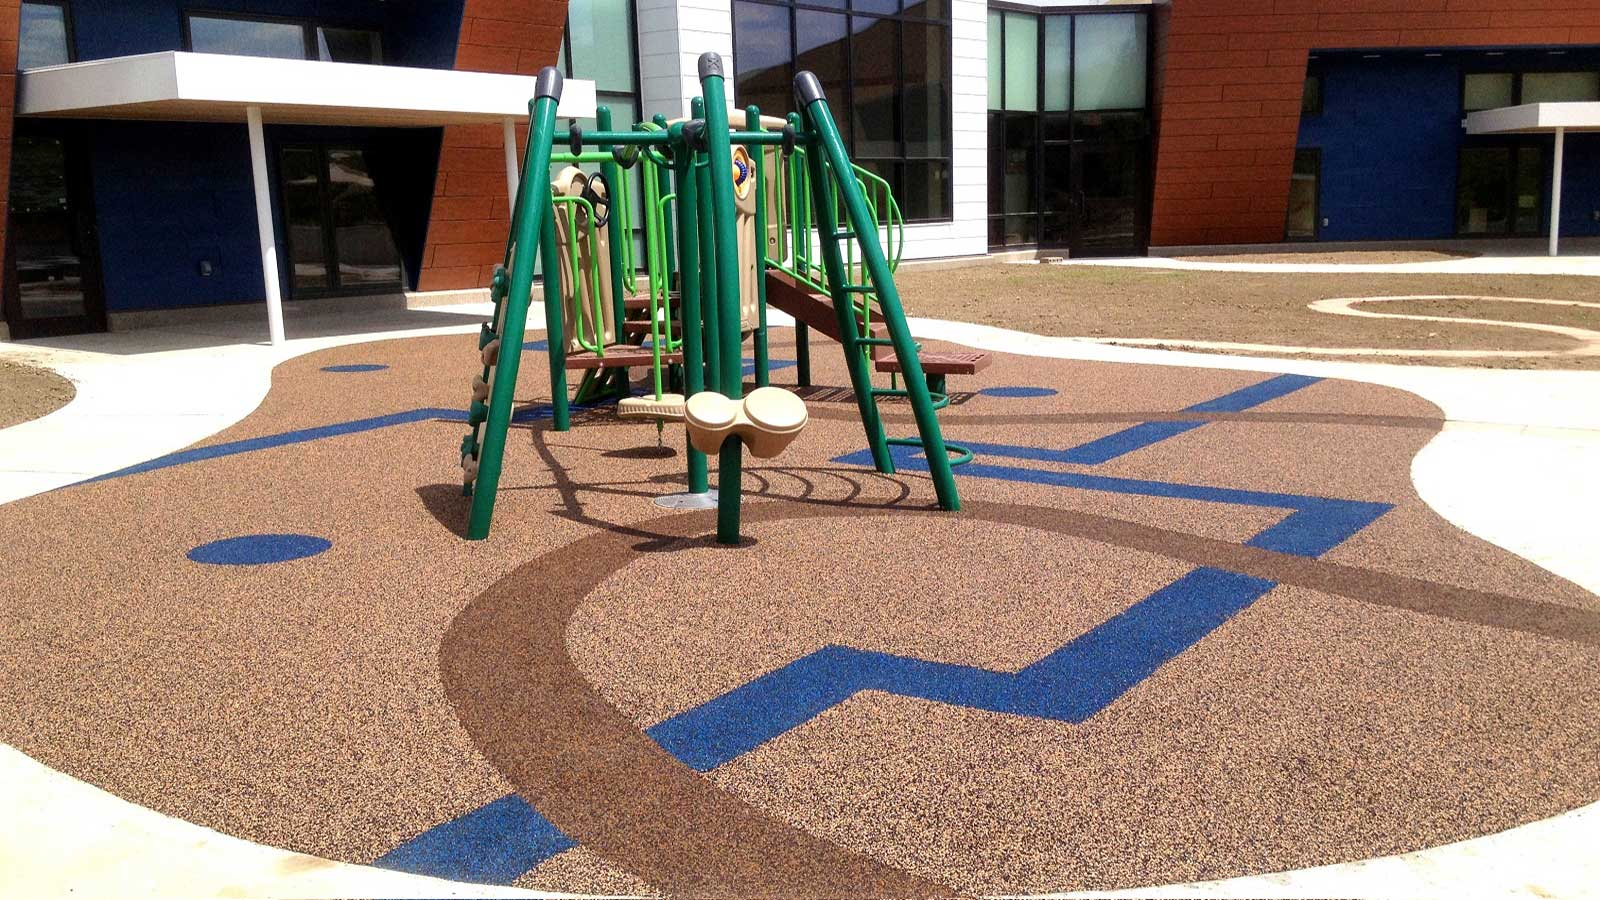 ecoturf surfacing Winnebago poured in place playground surfacing with graphics and designs